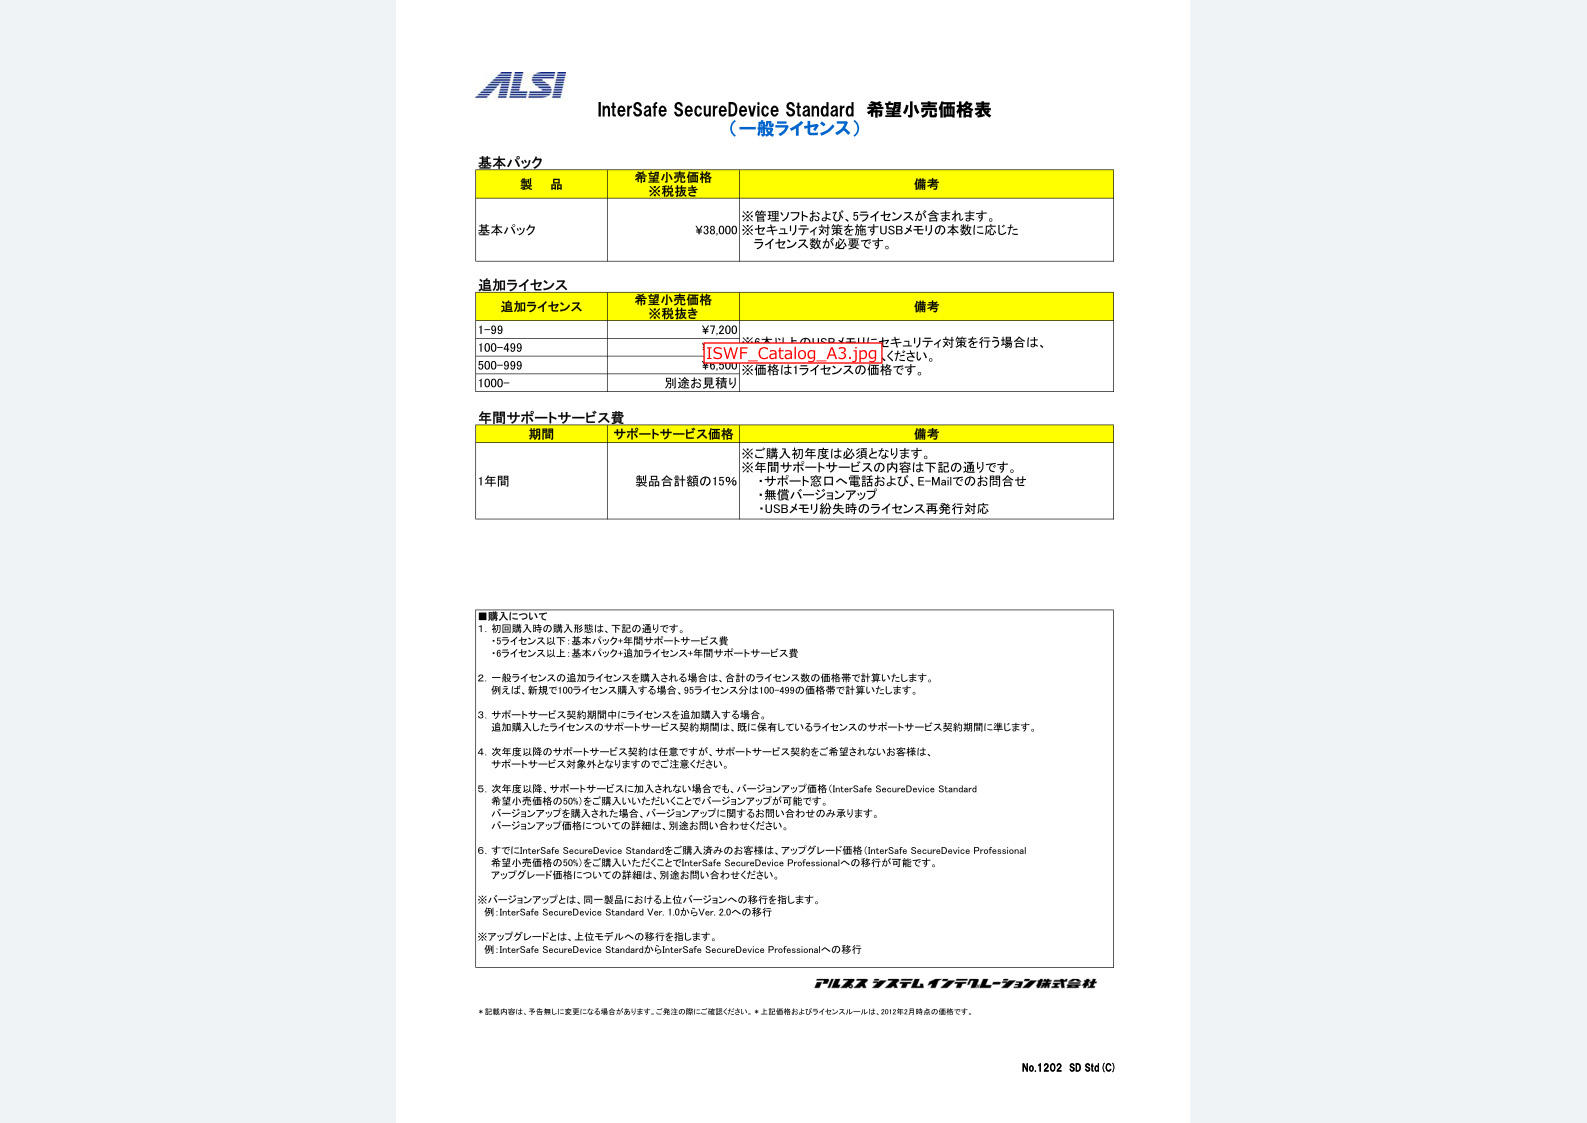 InterSafe SecureDevice Standard 価格表